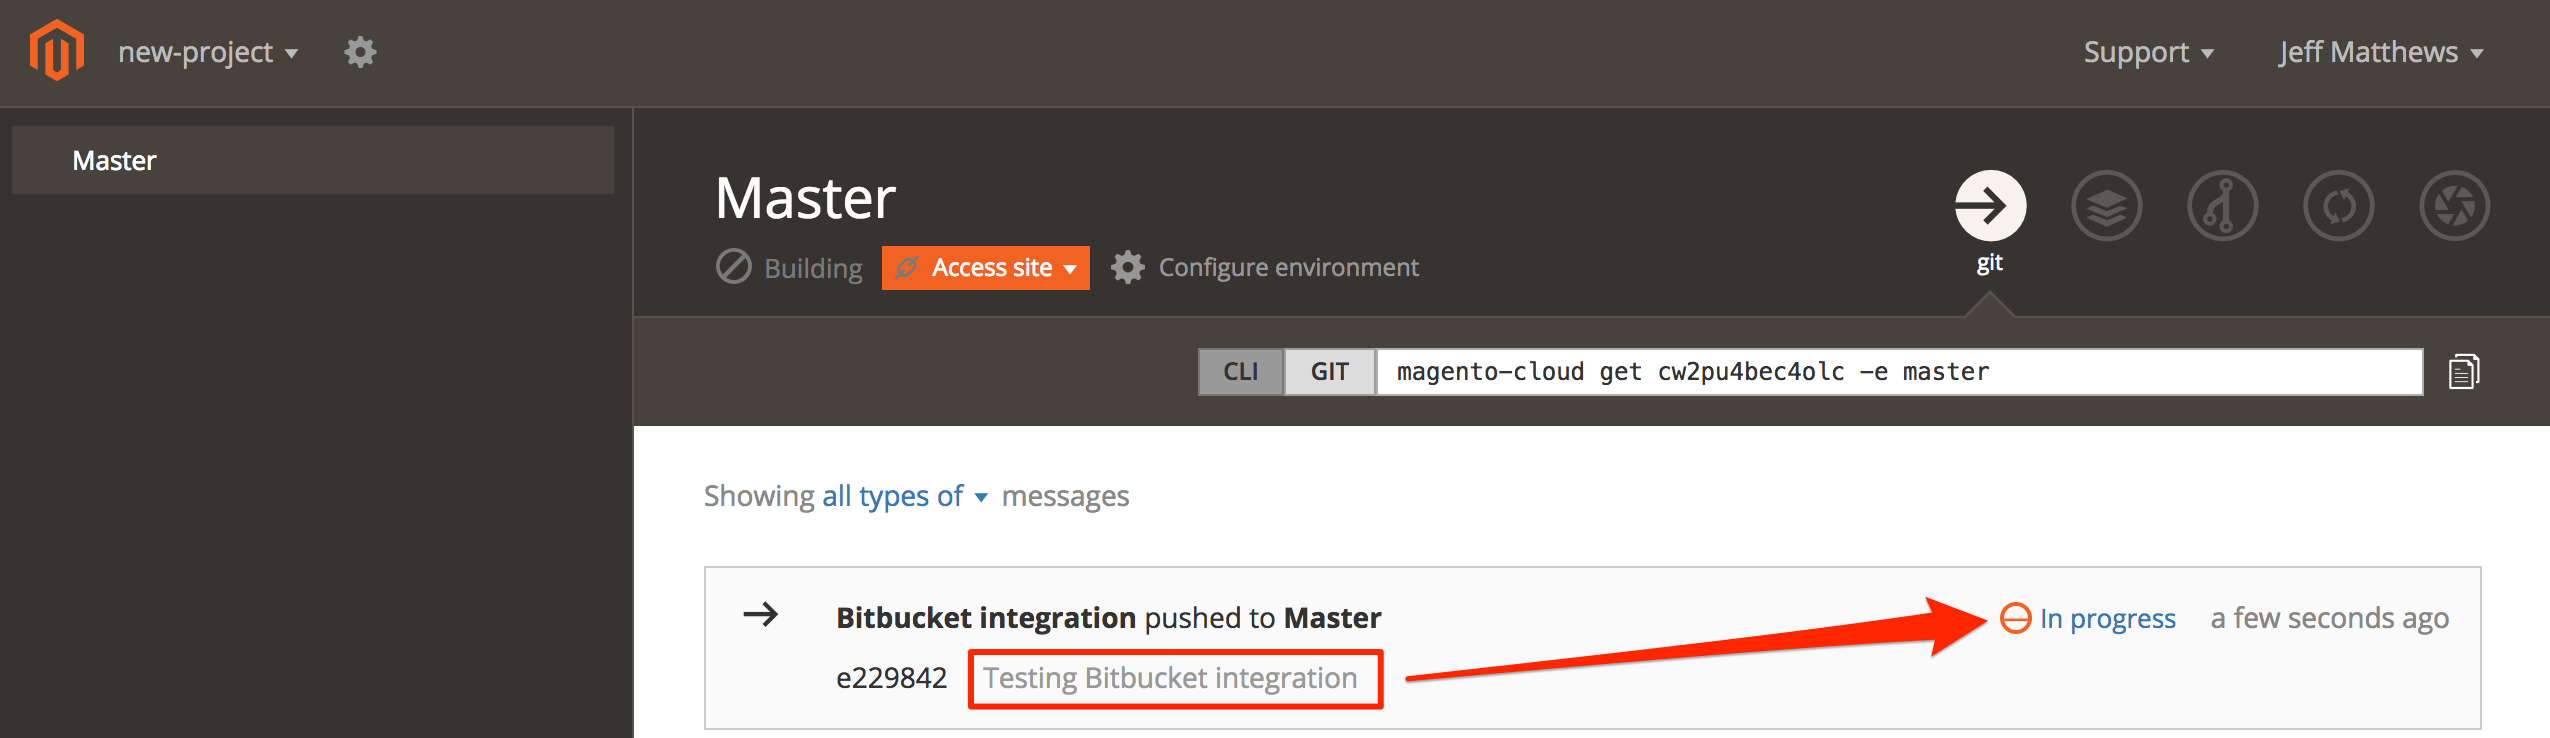 Testing the Bitbucket integration